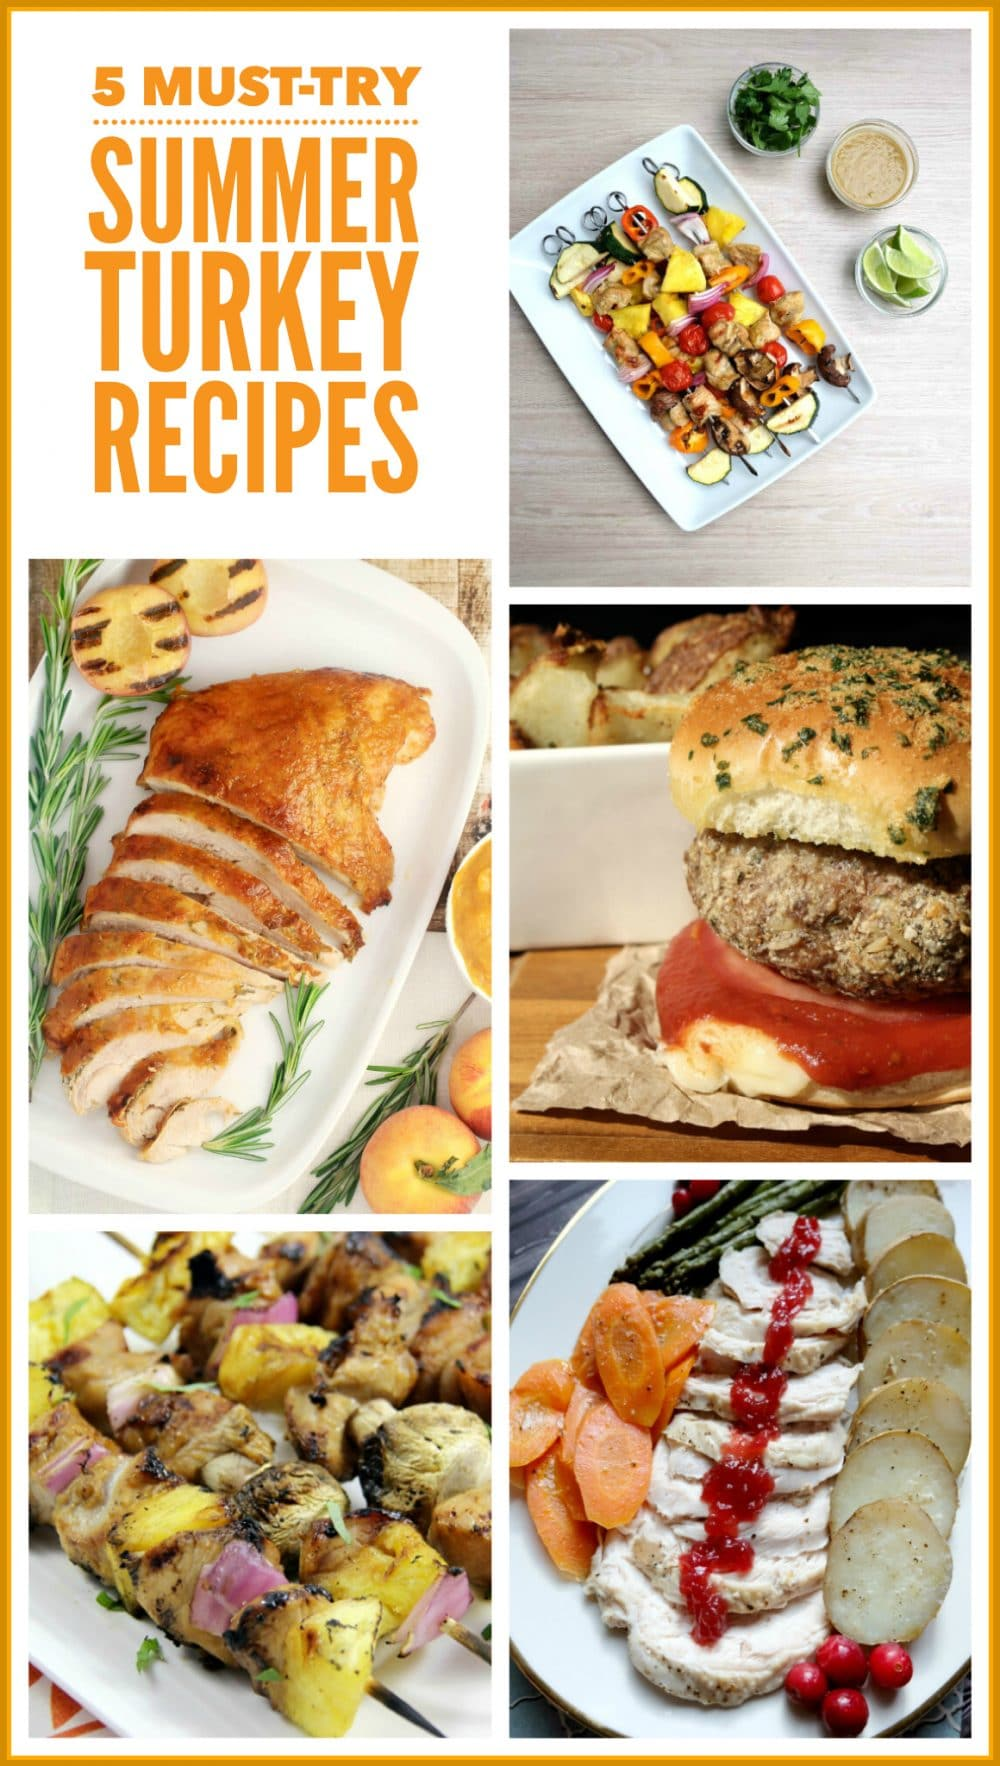 Turkey Recipe Collage